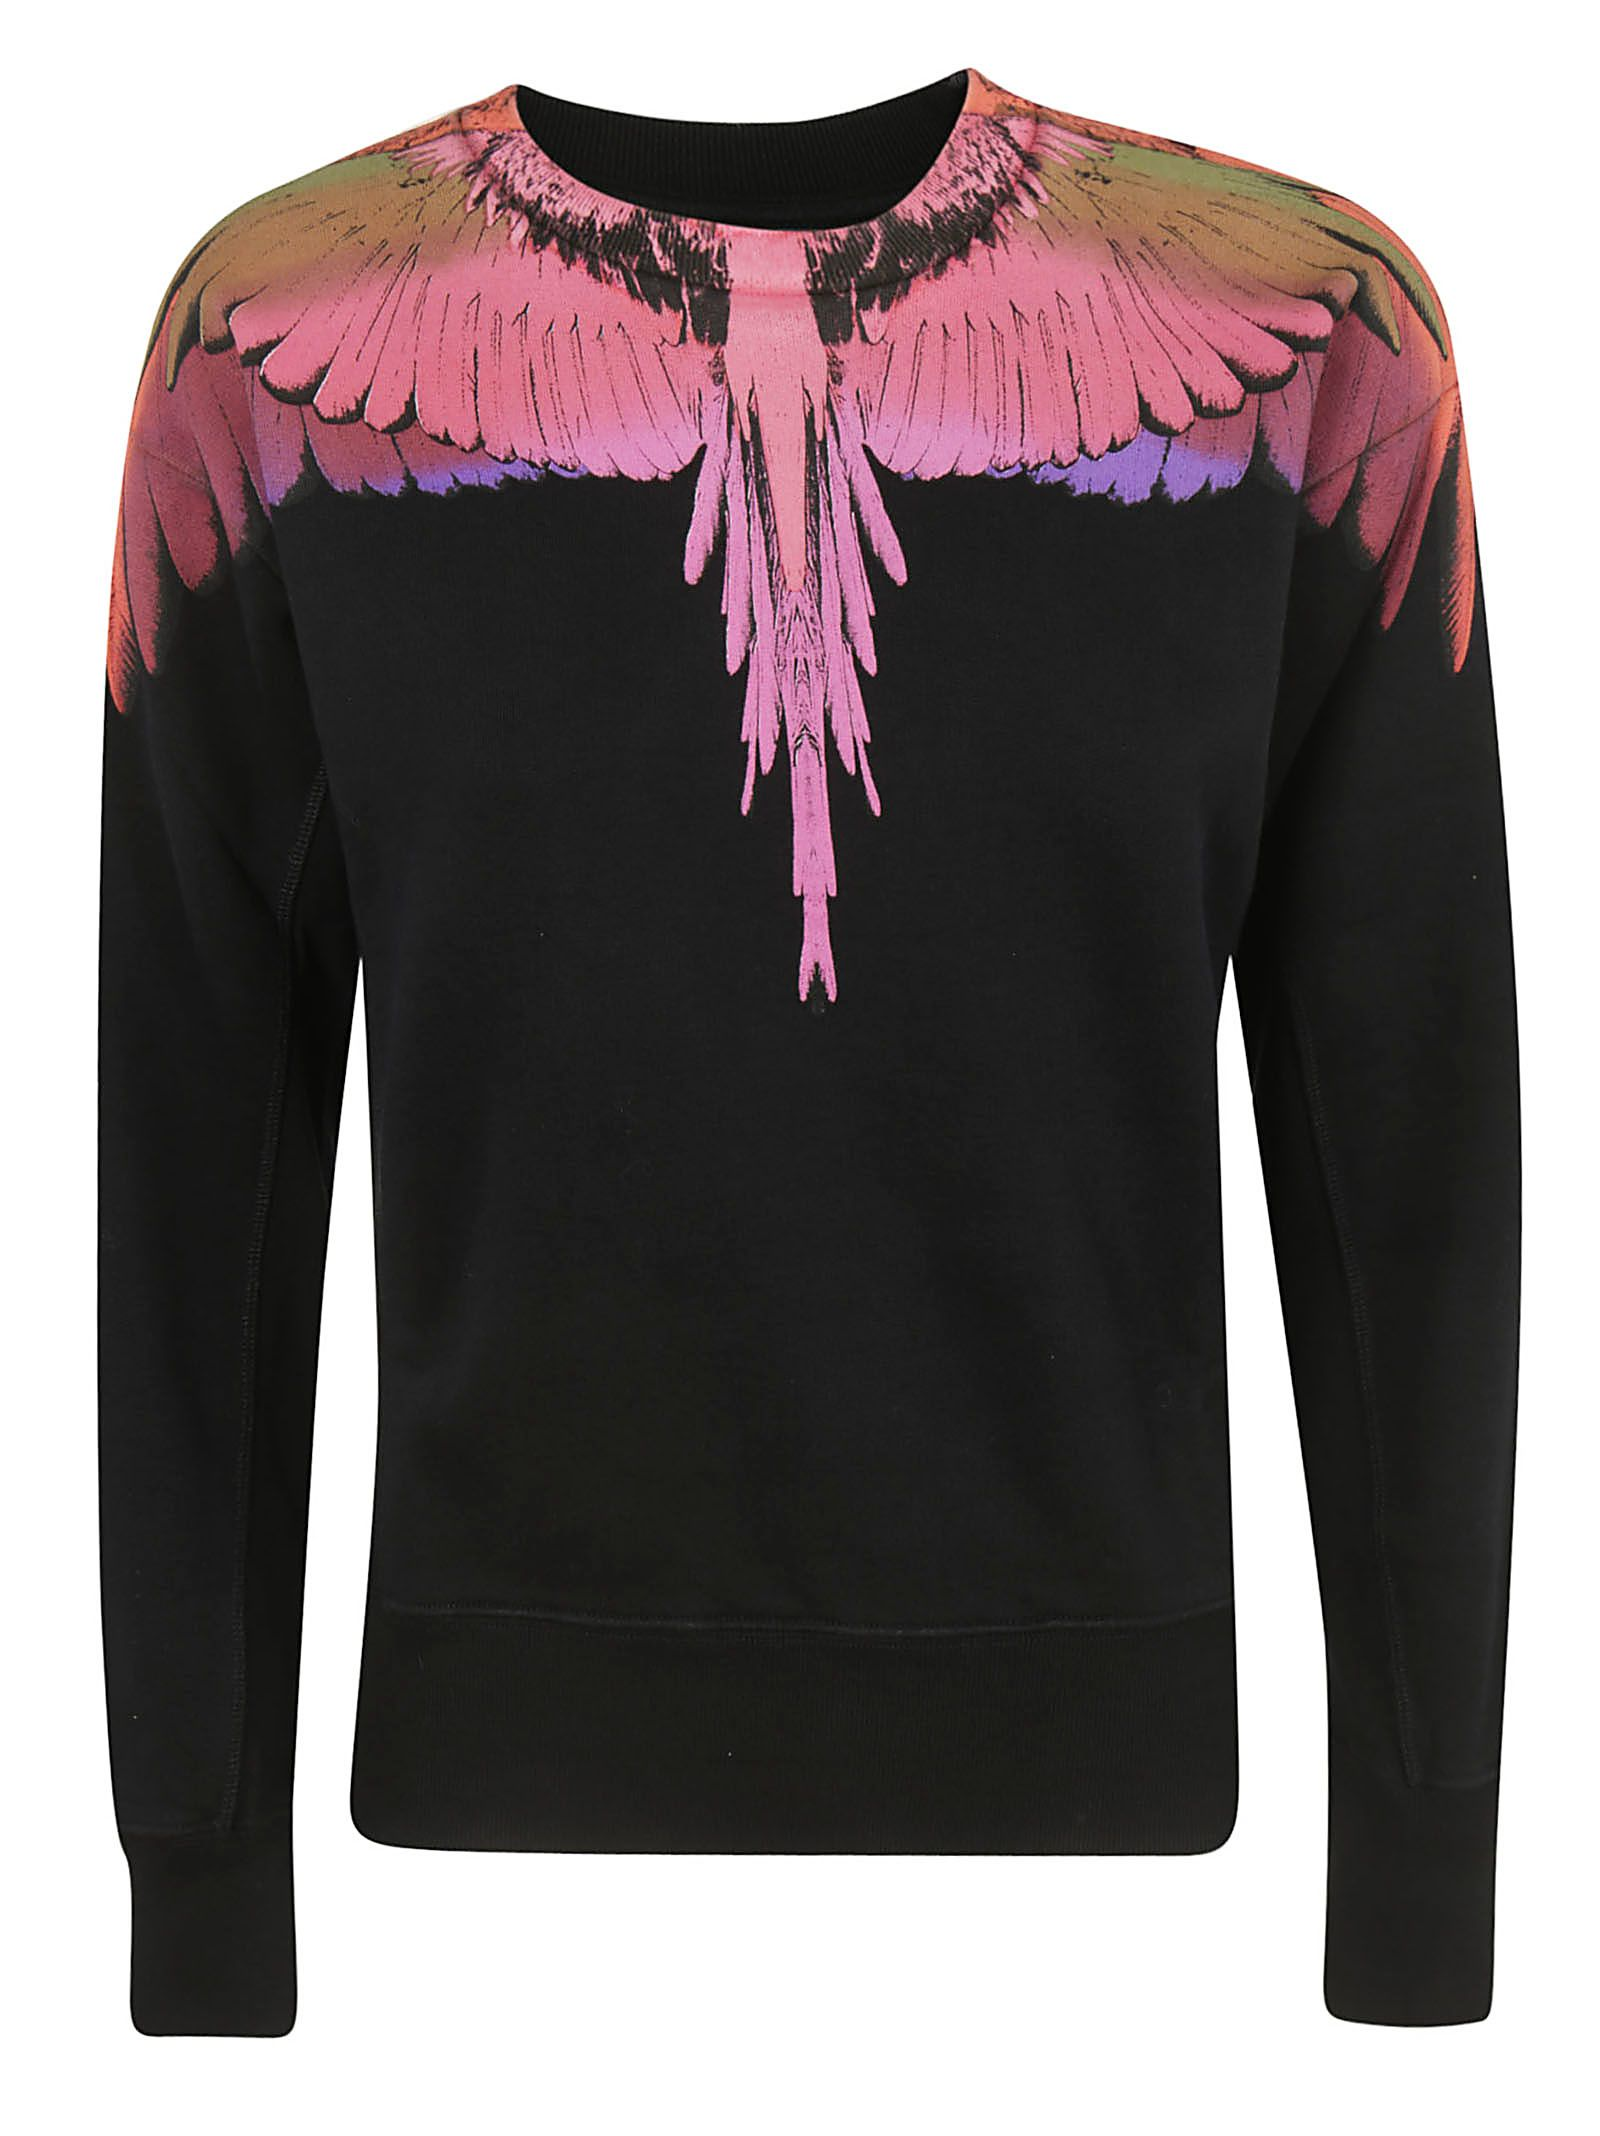 Wings Print Sweatshirt in 1088 Black